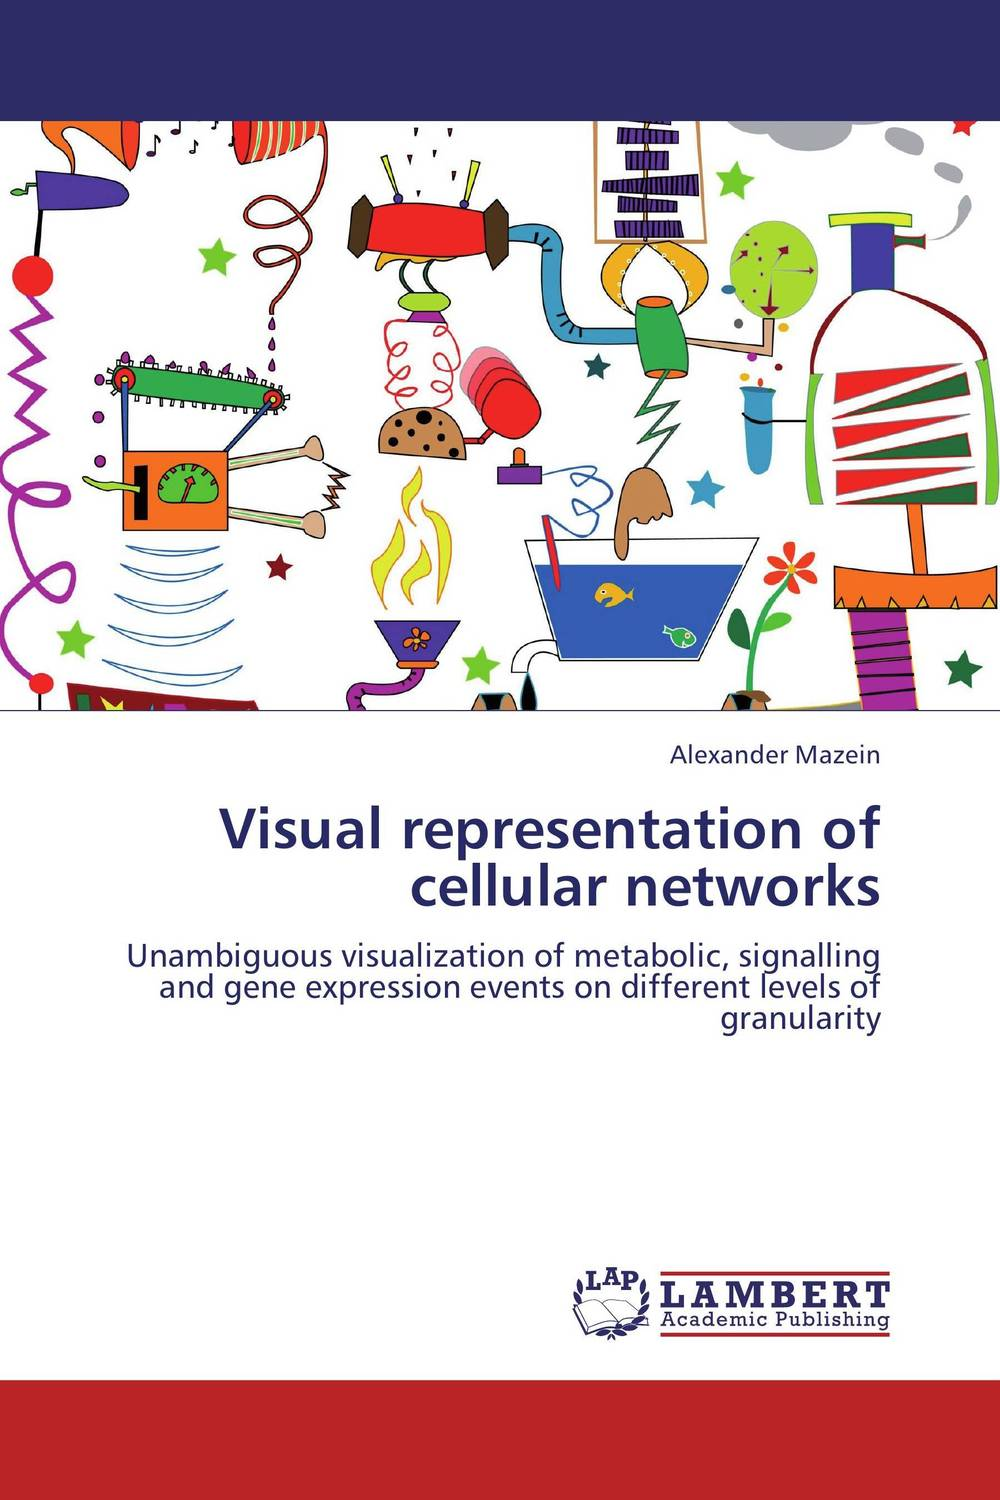 Visual representation of cellular networks